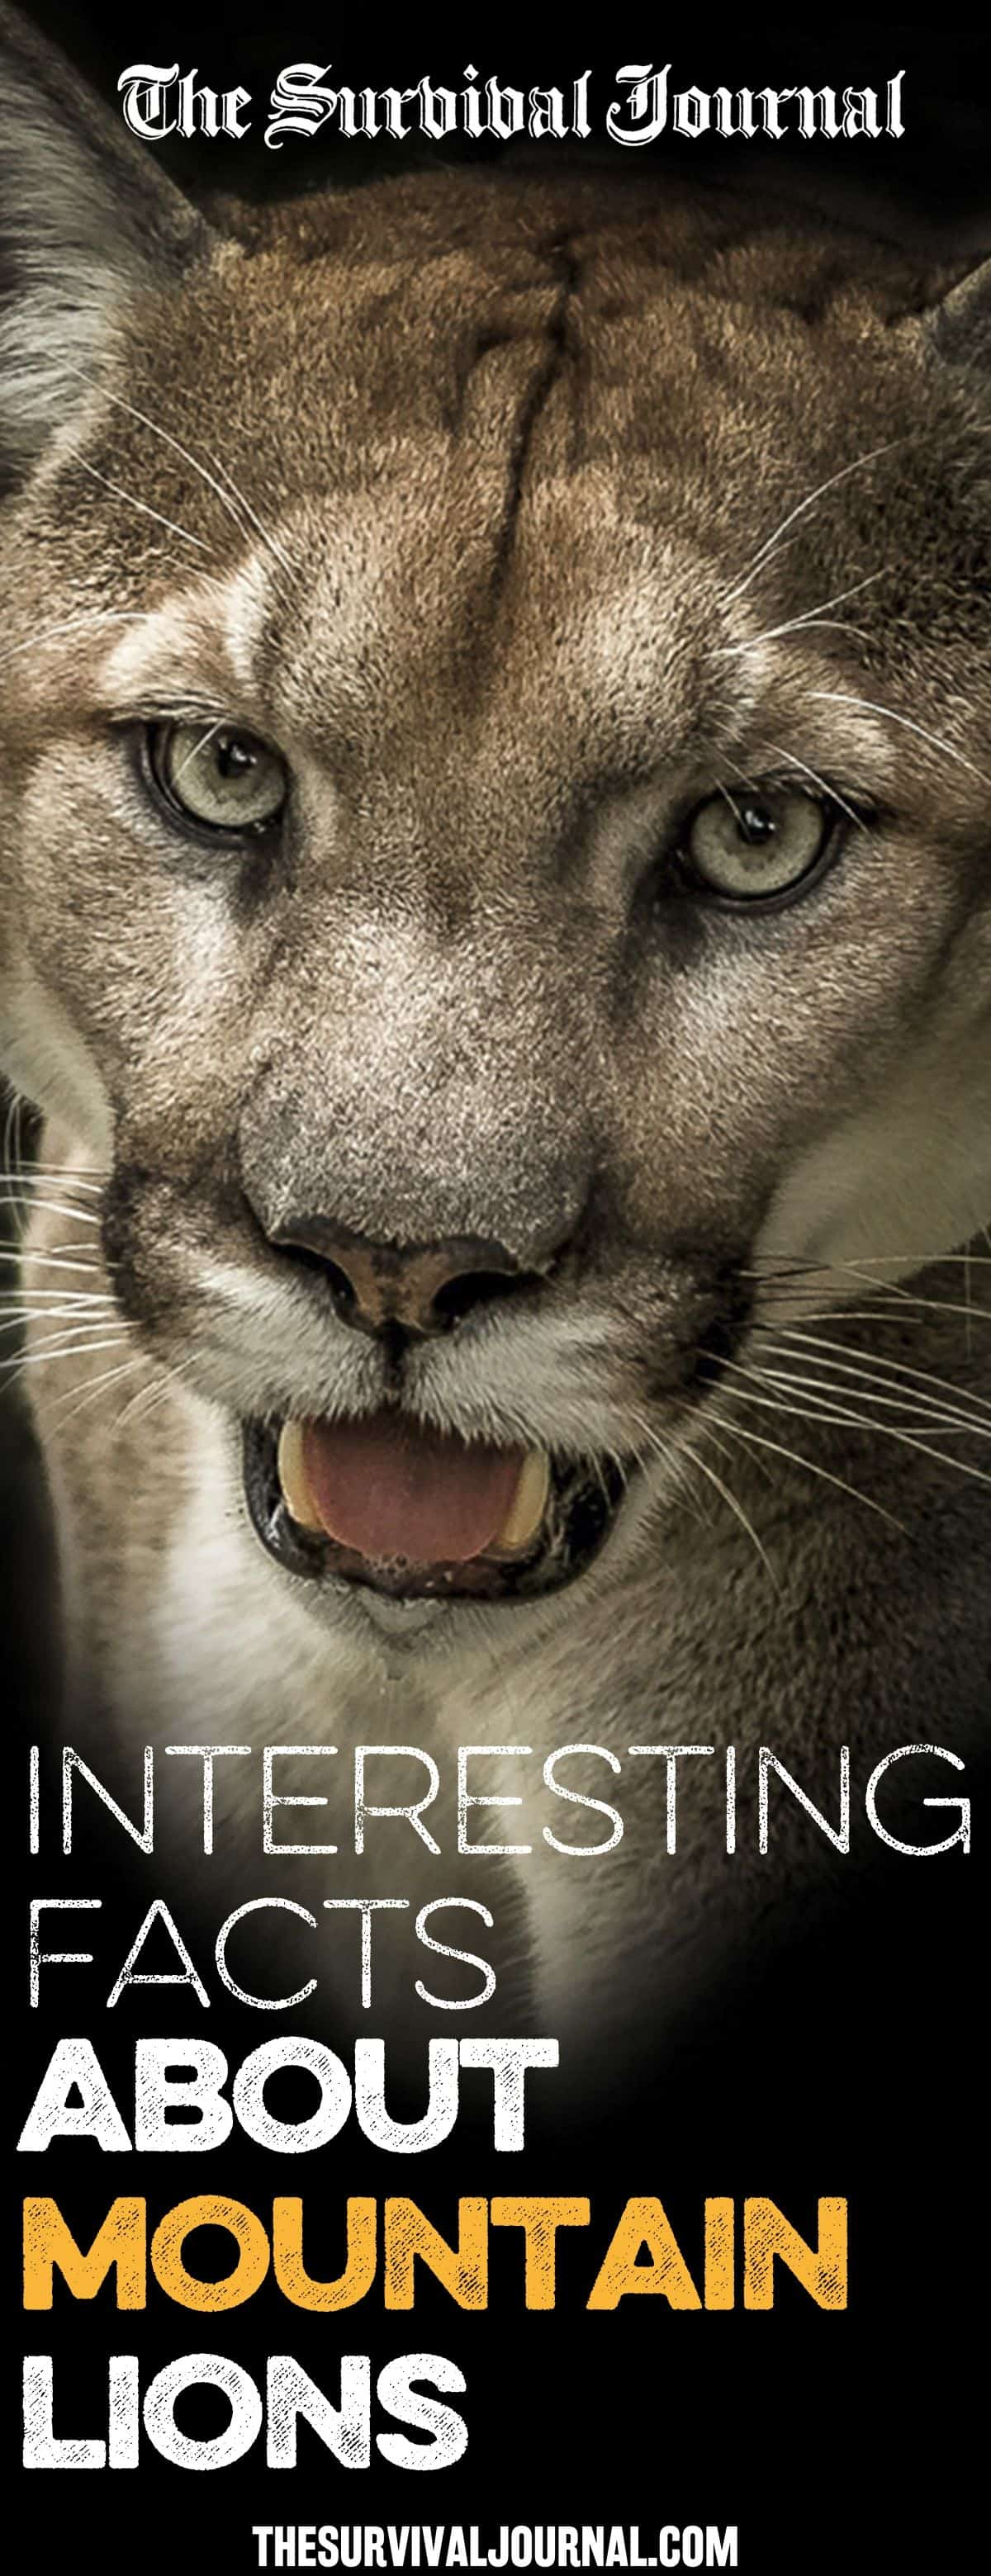 Interesting Facts About Mountain Lions